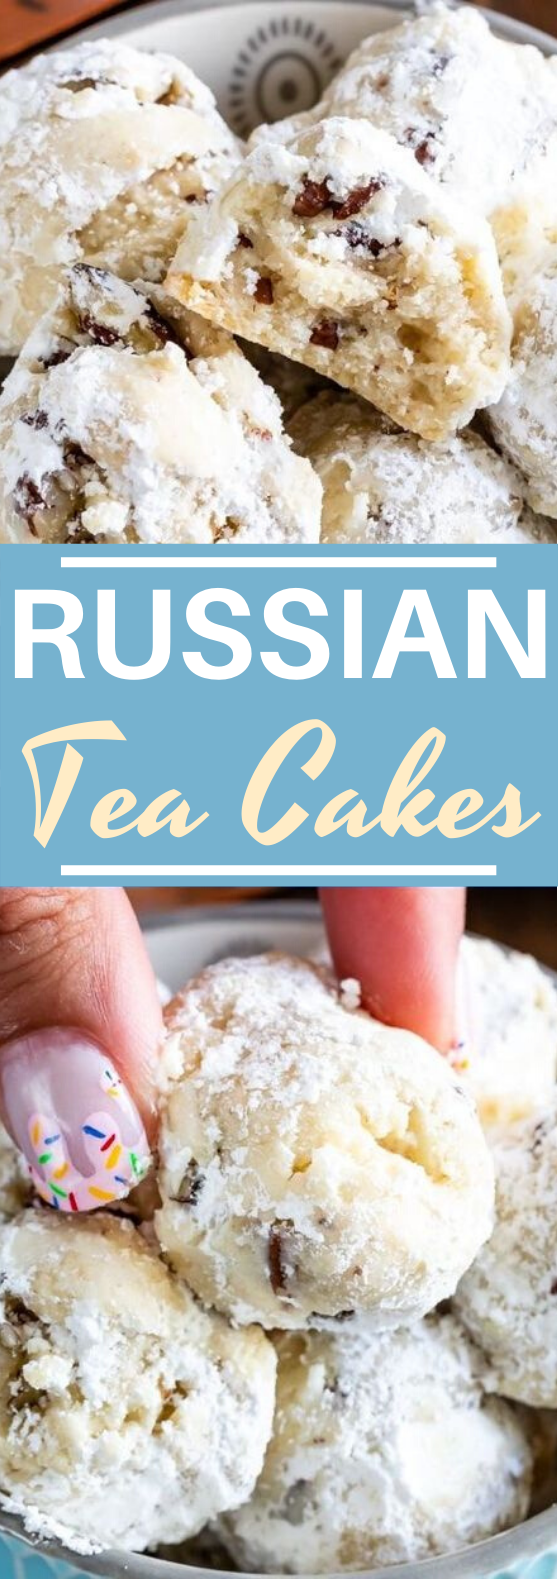 Russian Tea Cakes #cookies #cake #desserts #baking #christmas #sweet